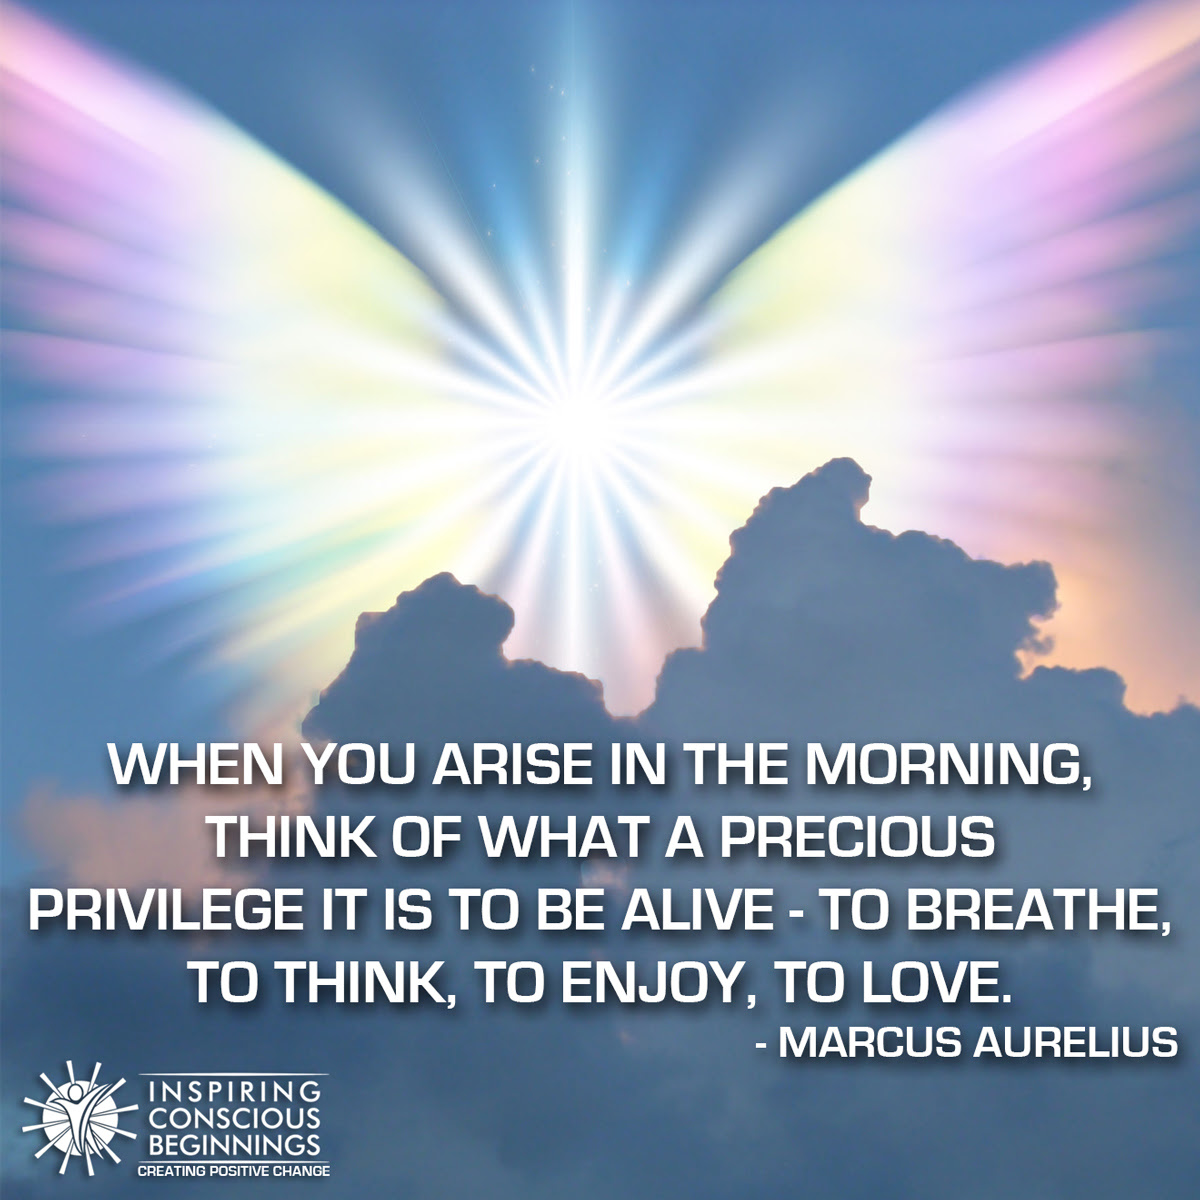 When You Arise In The Morning Inspiring Conscious Beginnings